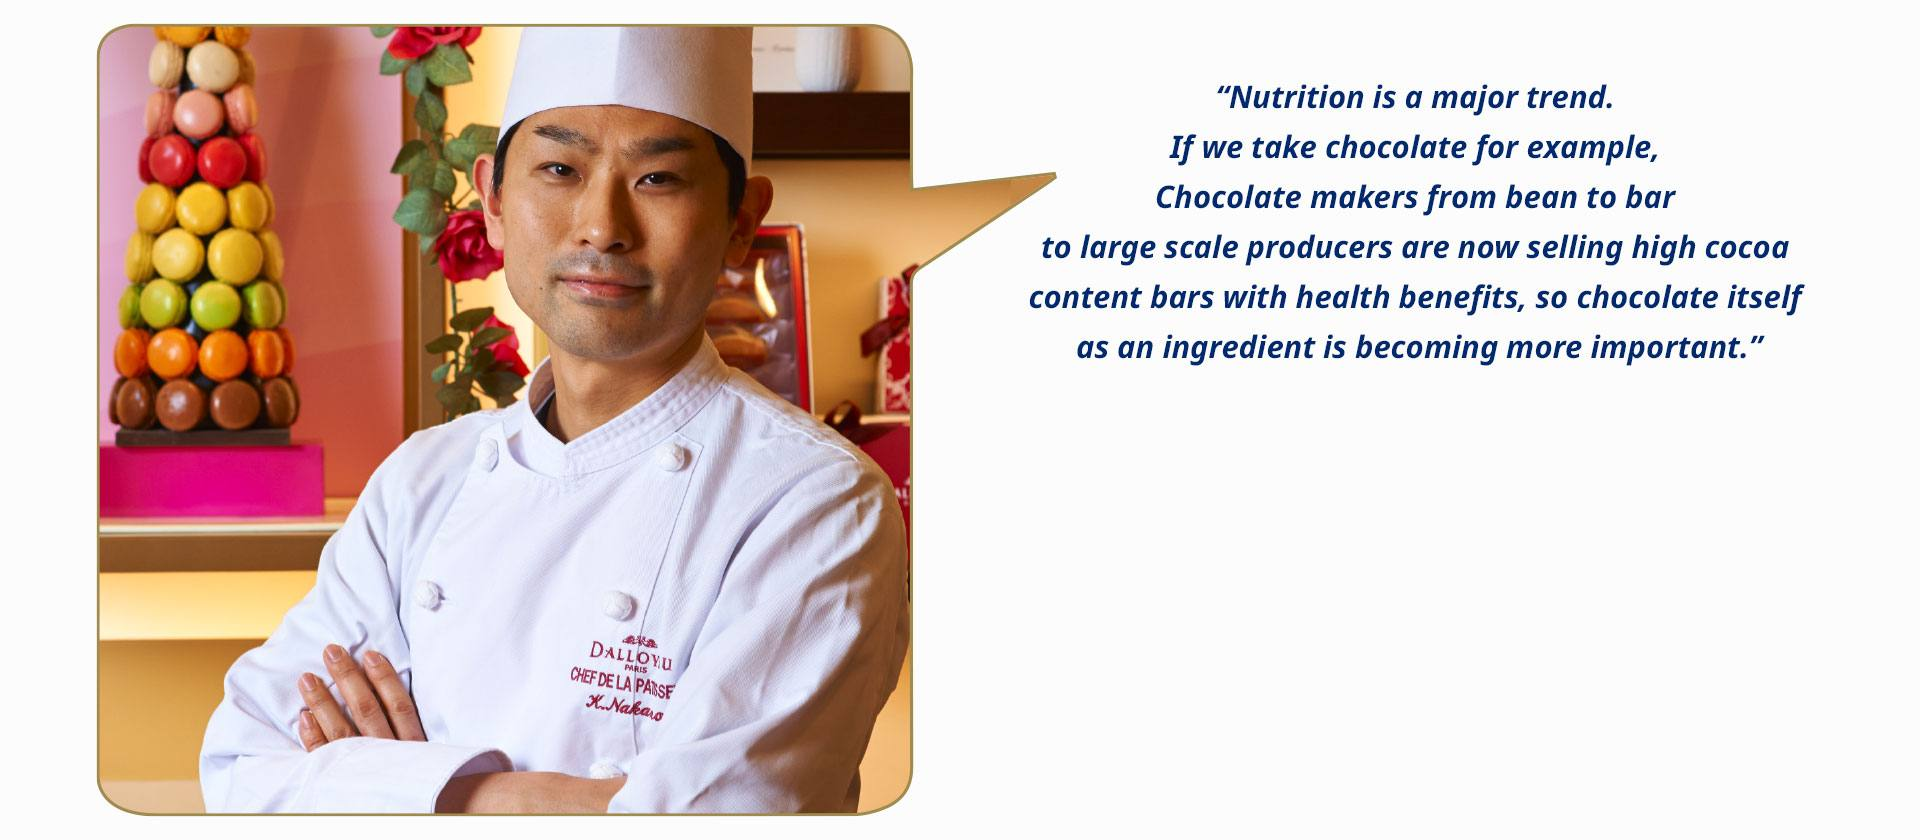 Kenta Nakano (Japan), Pastry Chef & Product Development Chief at Dalloyau